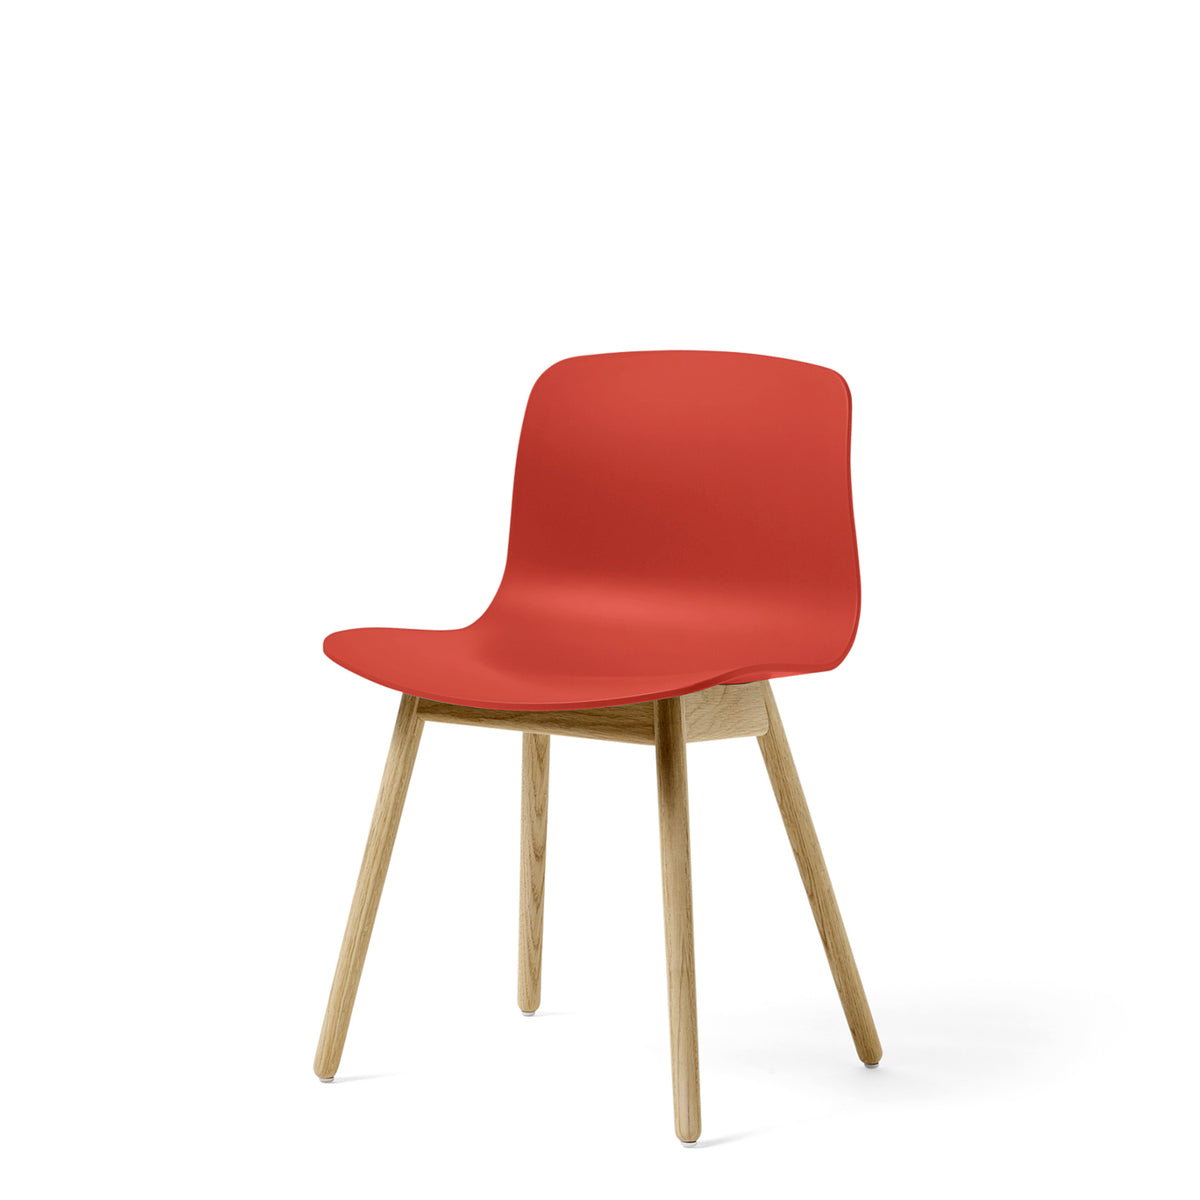 HAY About A Chair AAC12 Warm Red Chair with Matt Lacquered Solid Oak Frame